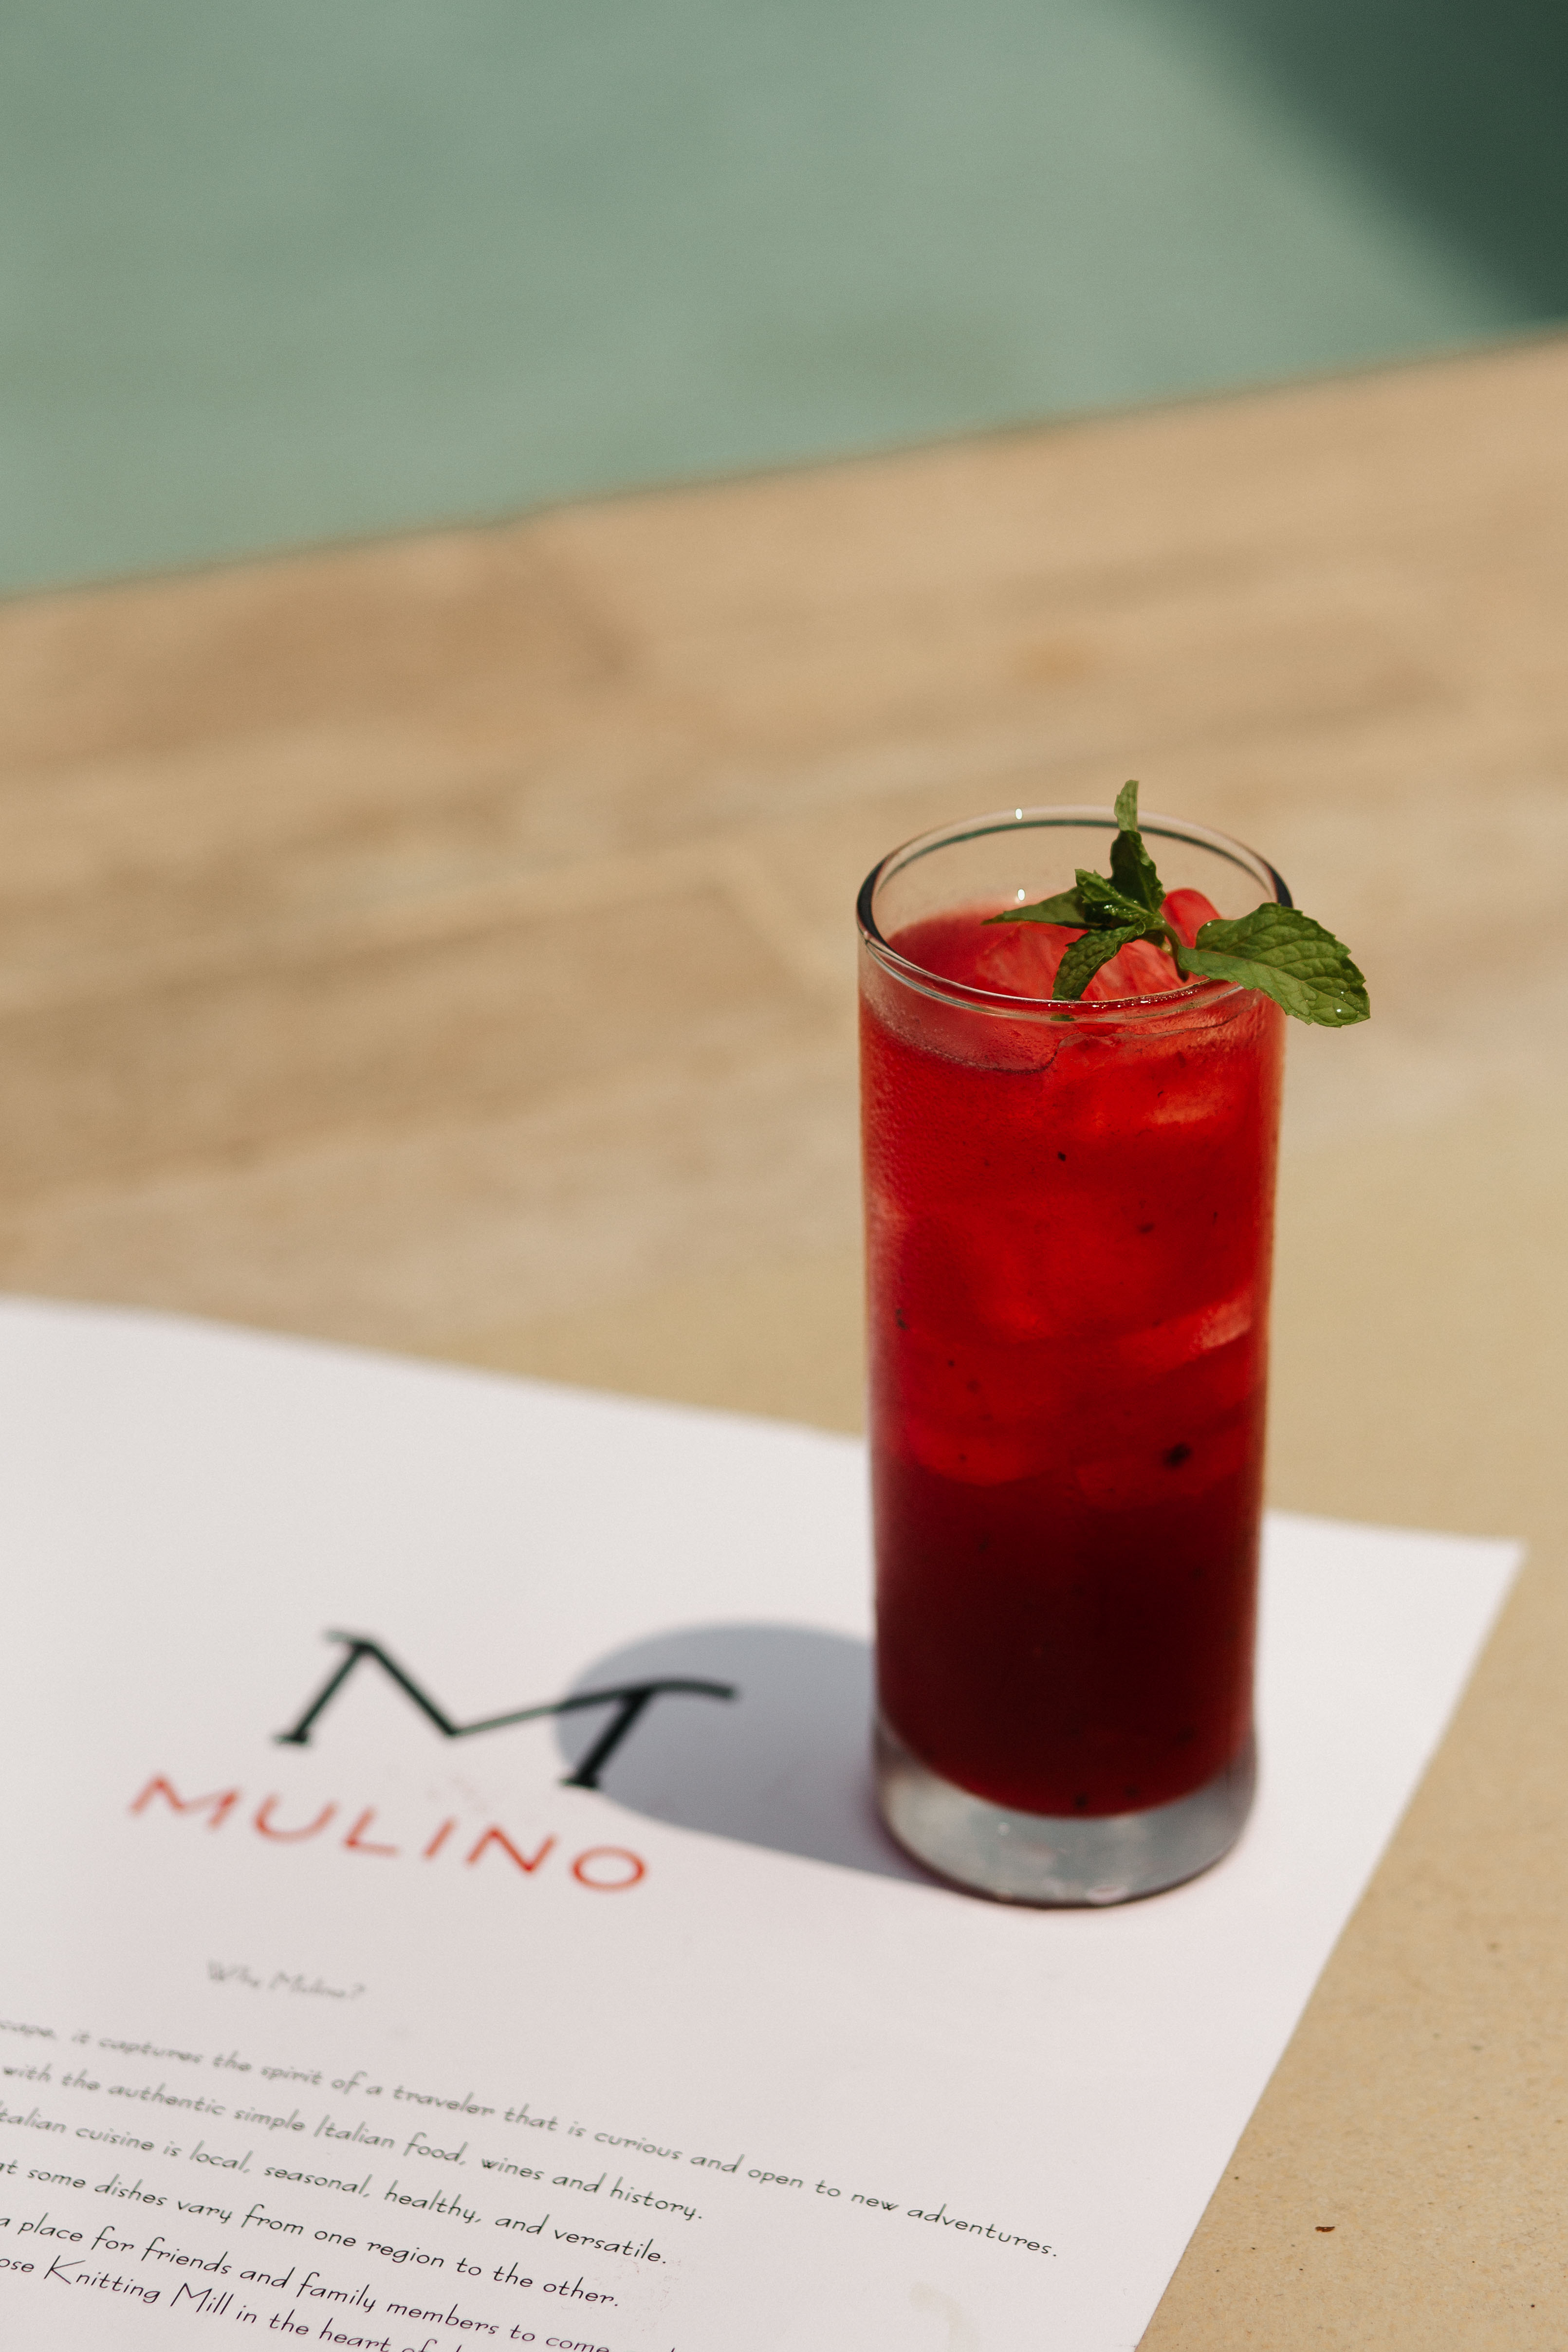 Cocktails at Mulino. Photography by Jamie Robbins.